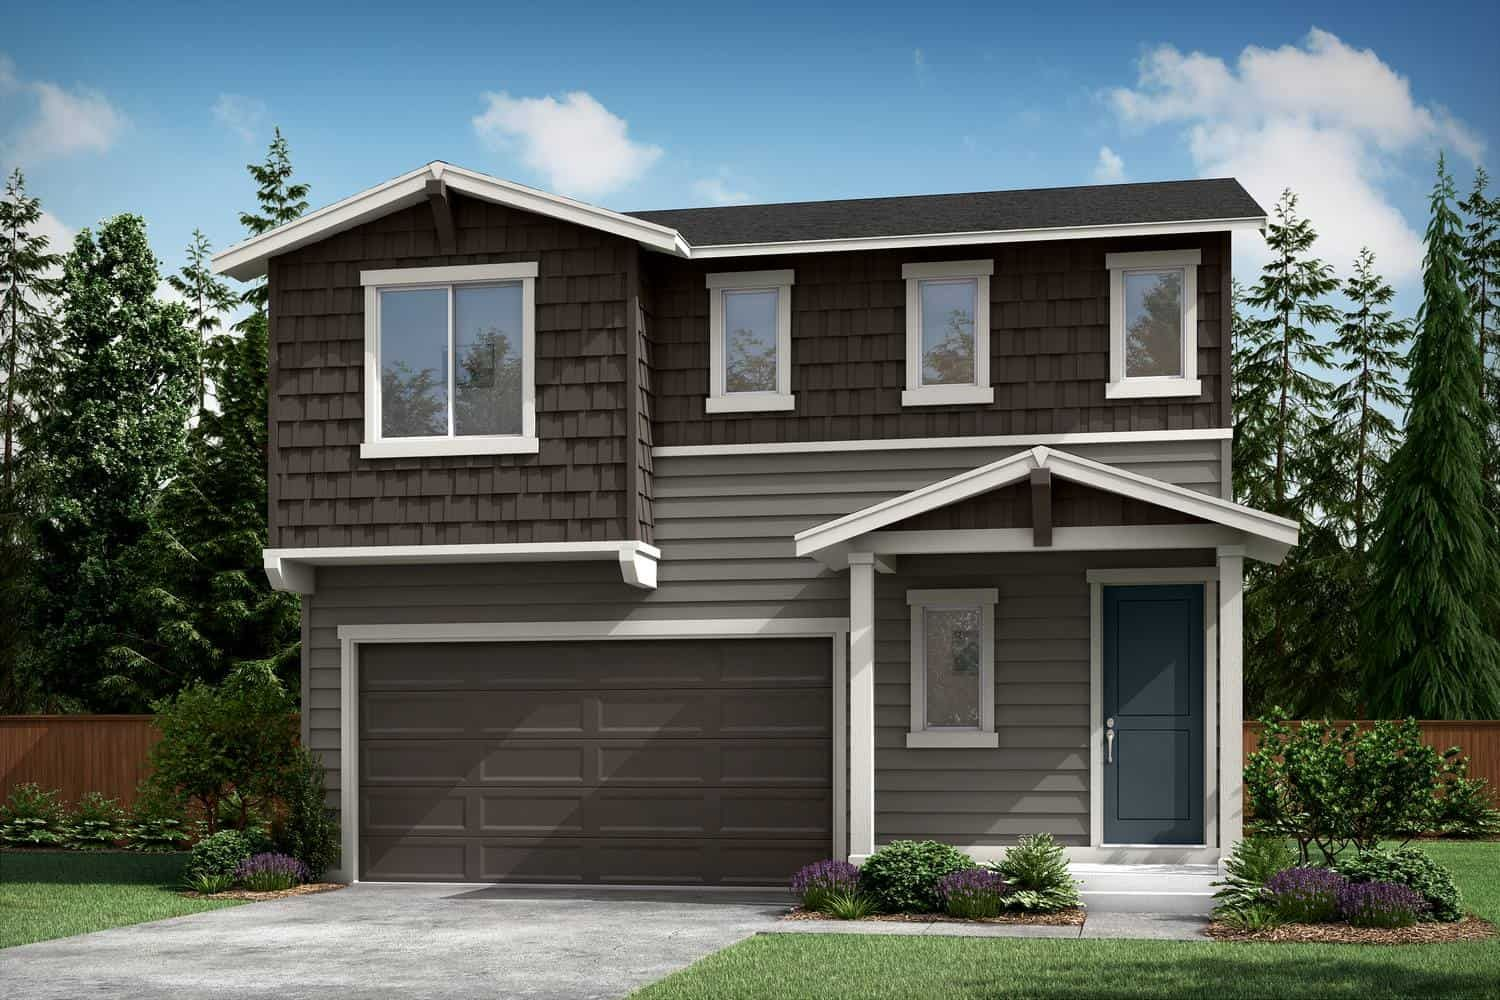 Plan A-240 Exterior Style A:Northtwest Craftsman